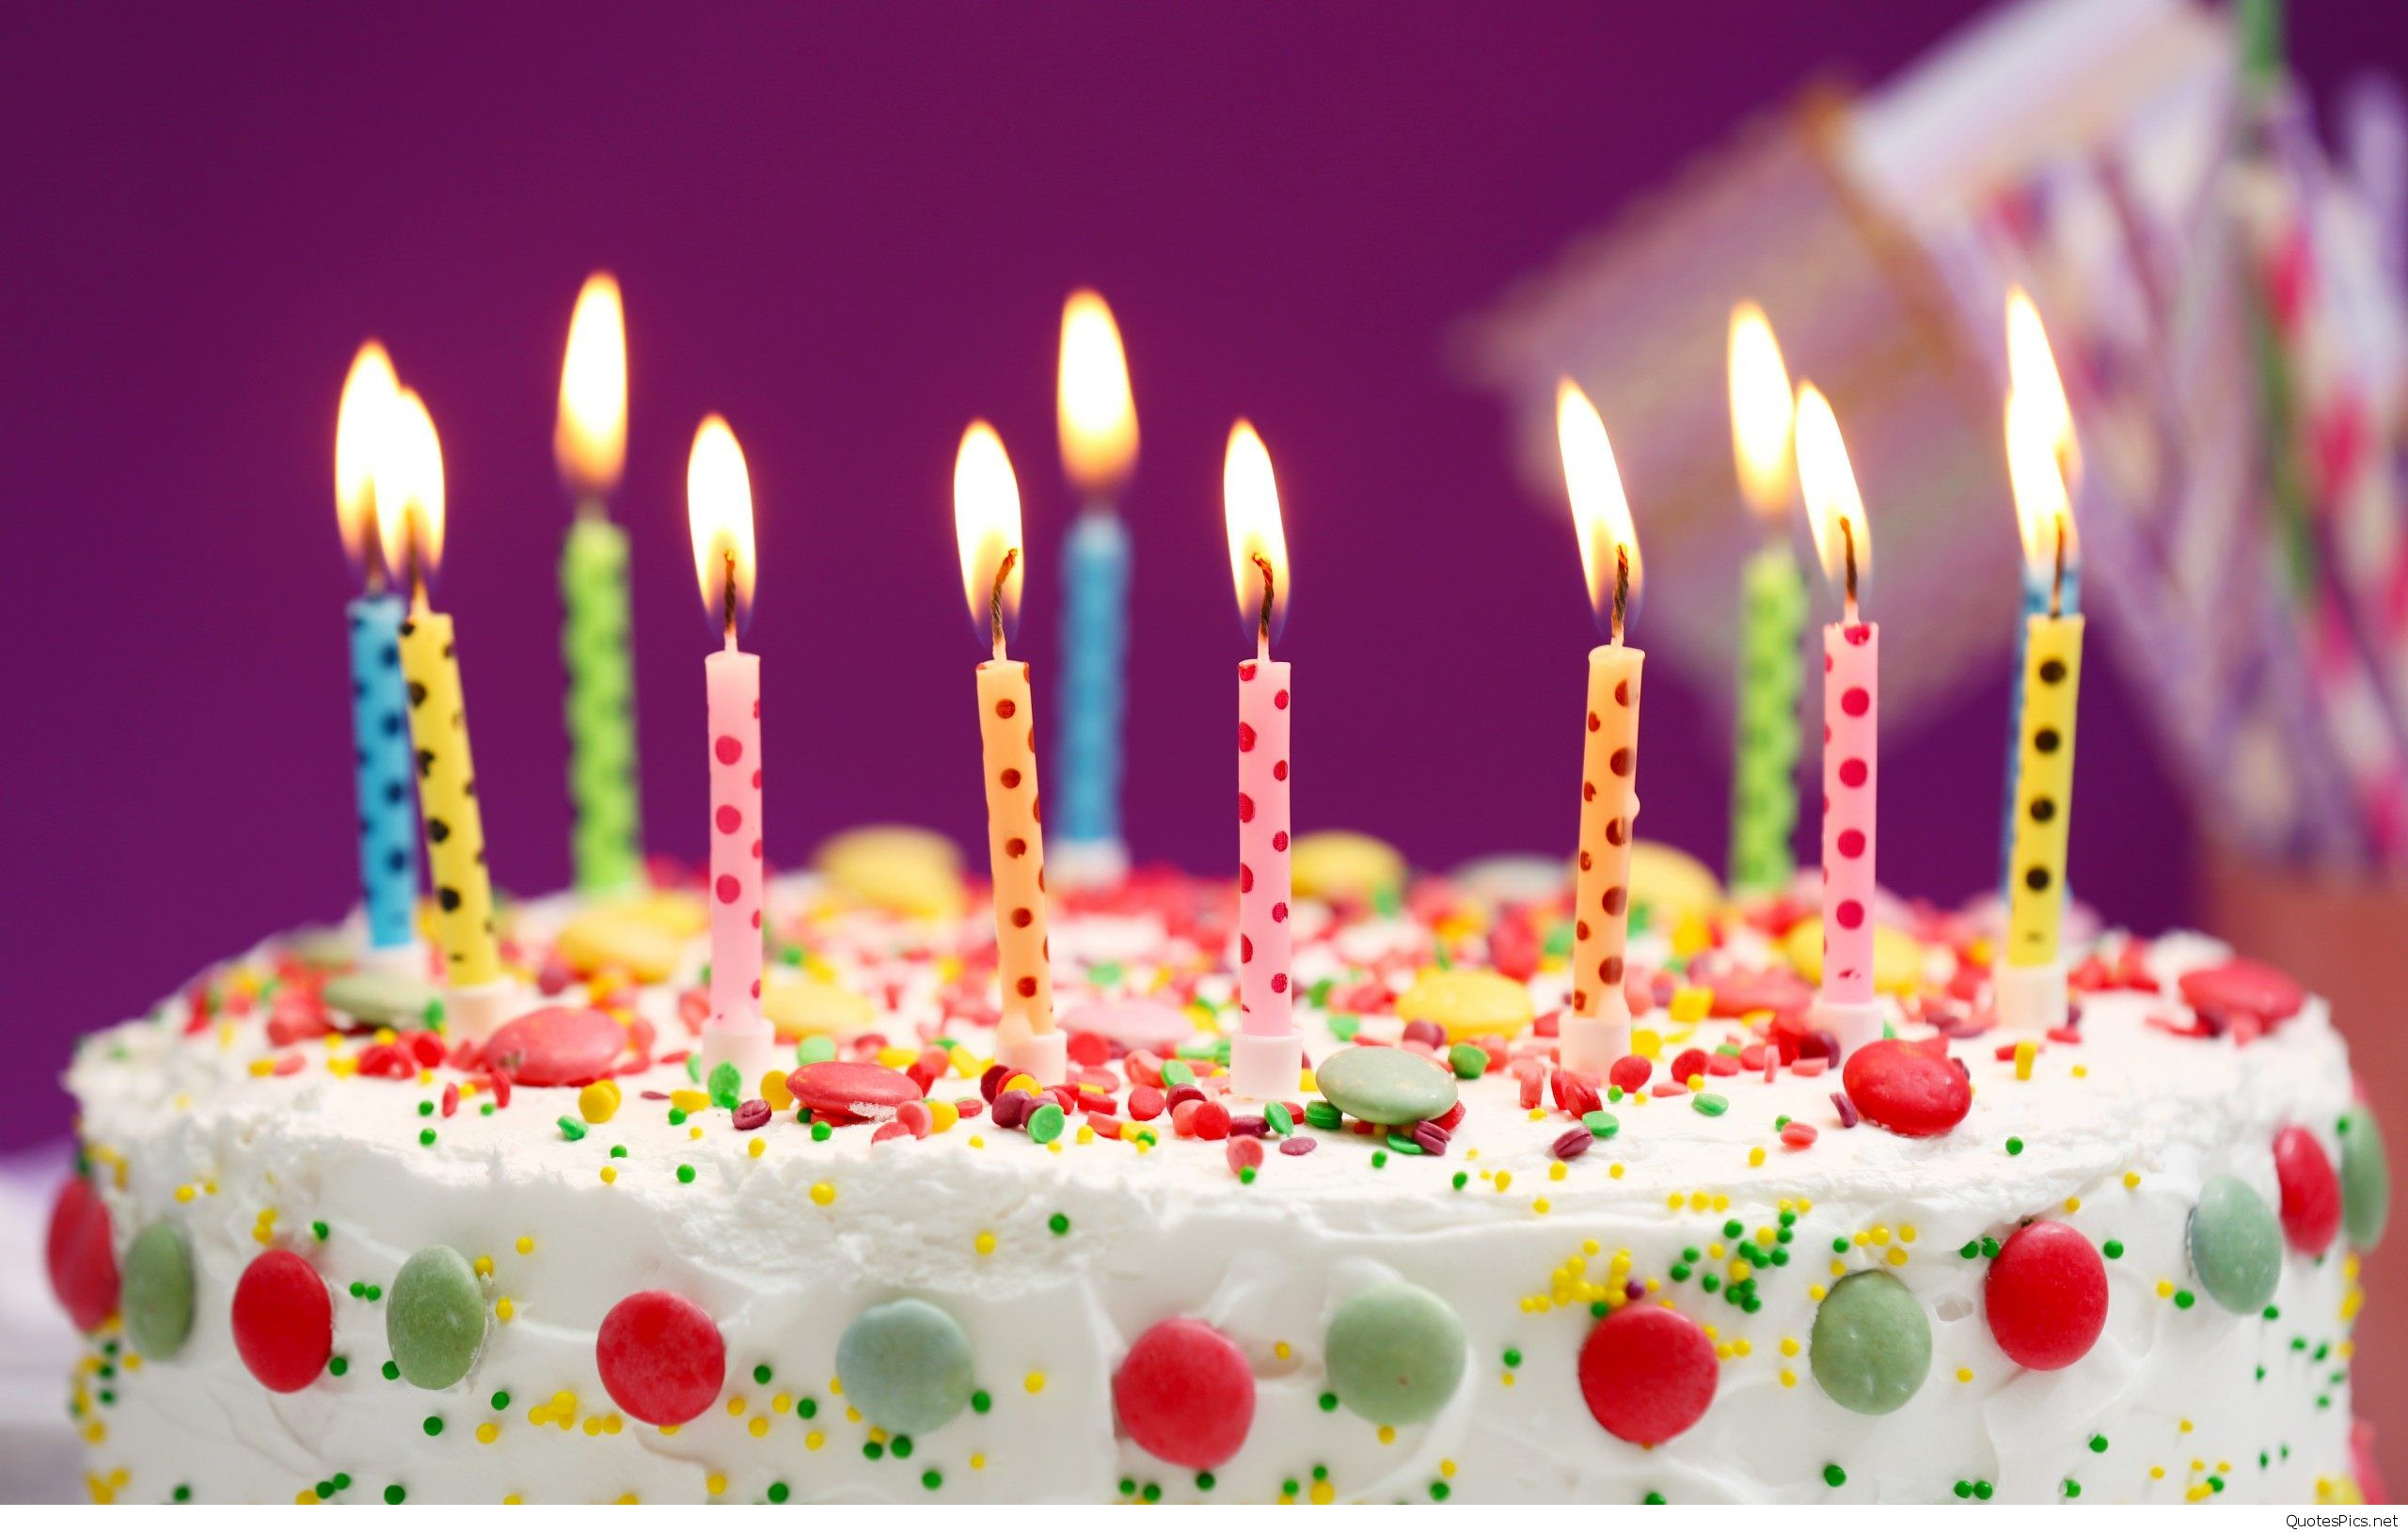 Happy Birthday Cake With Candles Amazing Happy Birthday Cake Wallpapers Hd